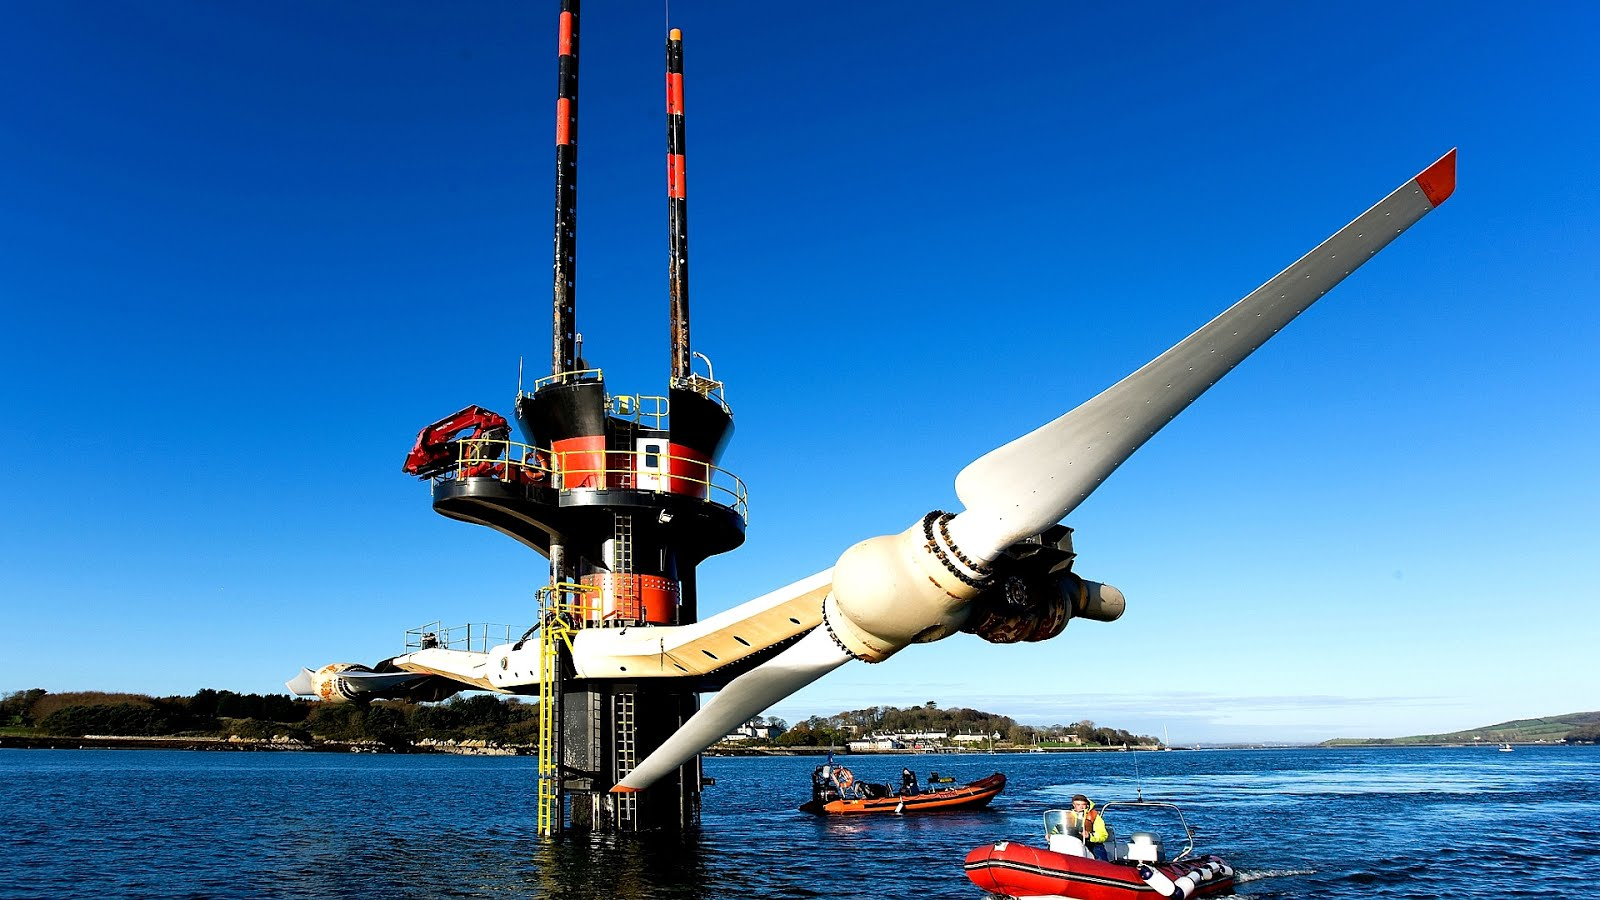 Is Tidal Energy Renewable Or Nonrenewable